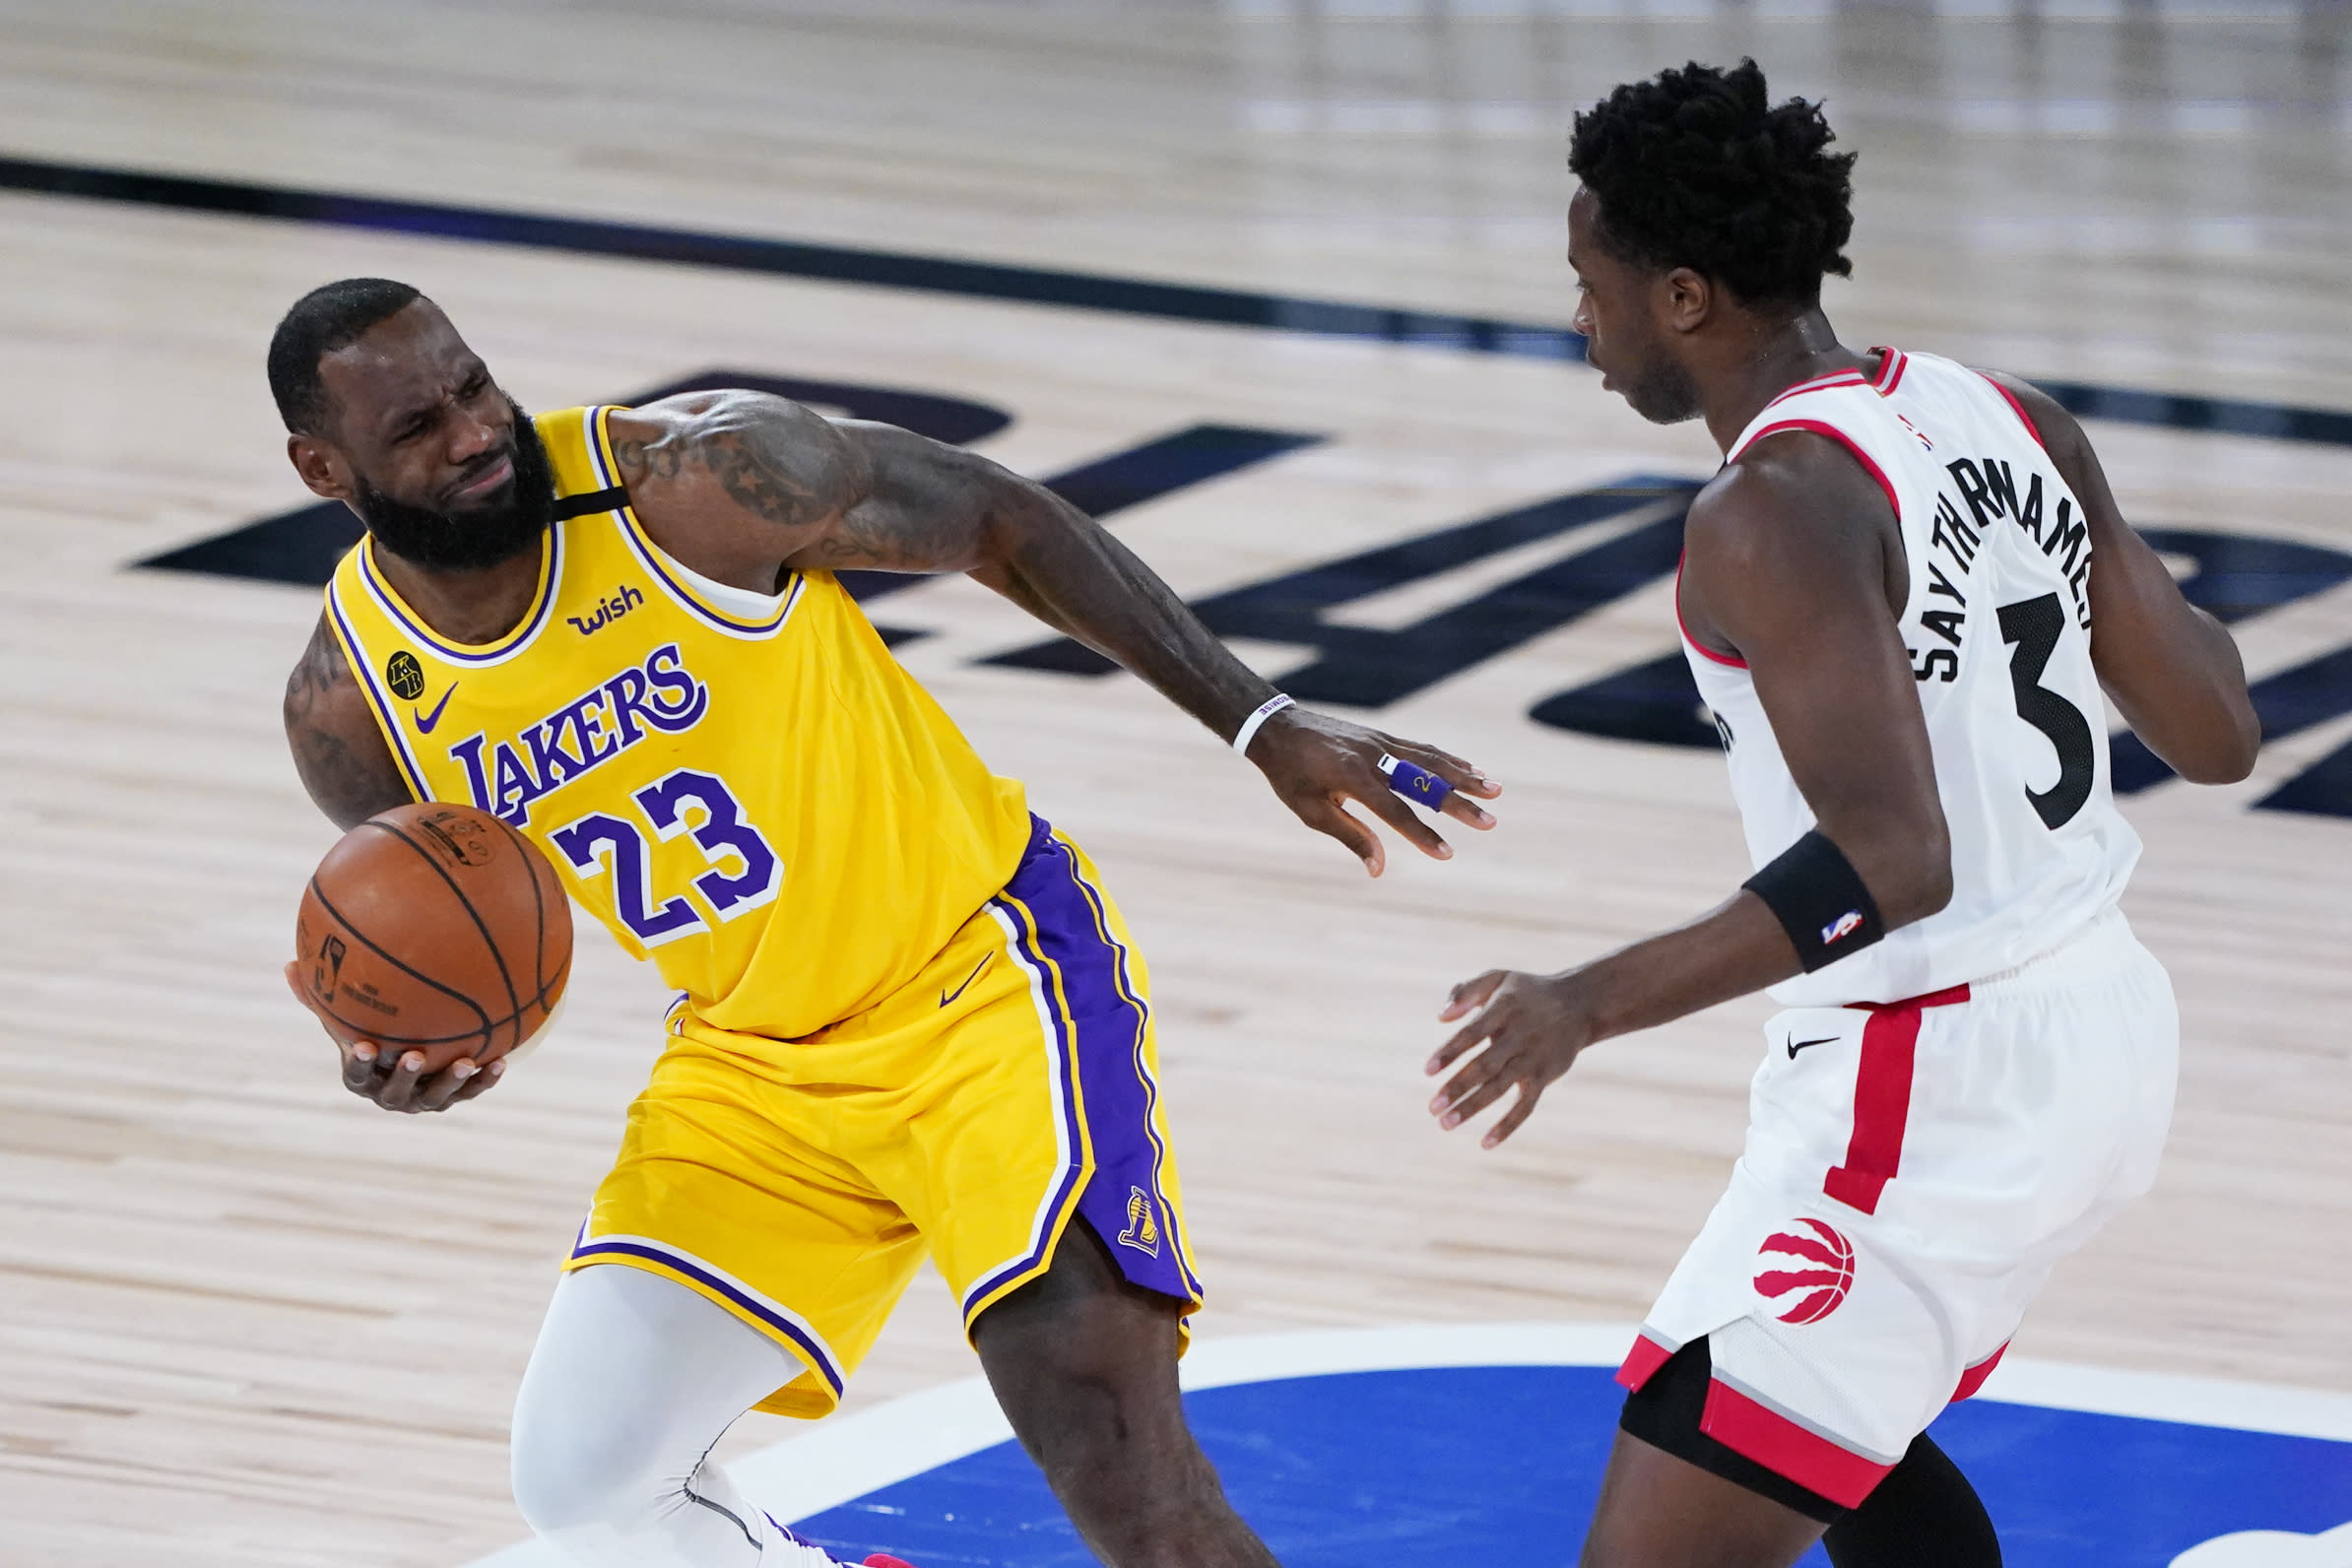 Betting lines nba series score lay back betting calculator for football